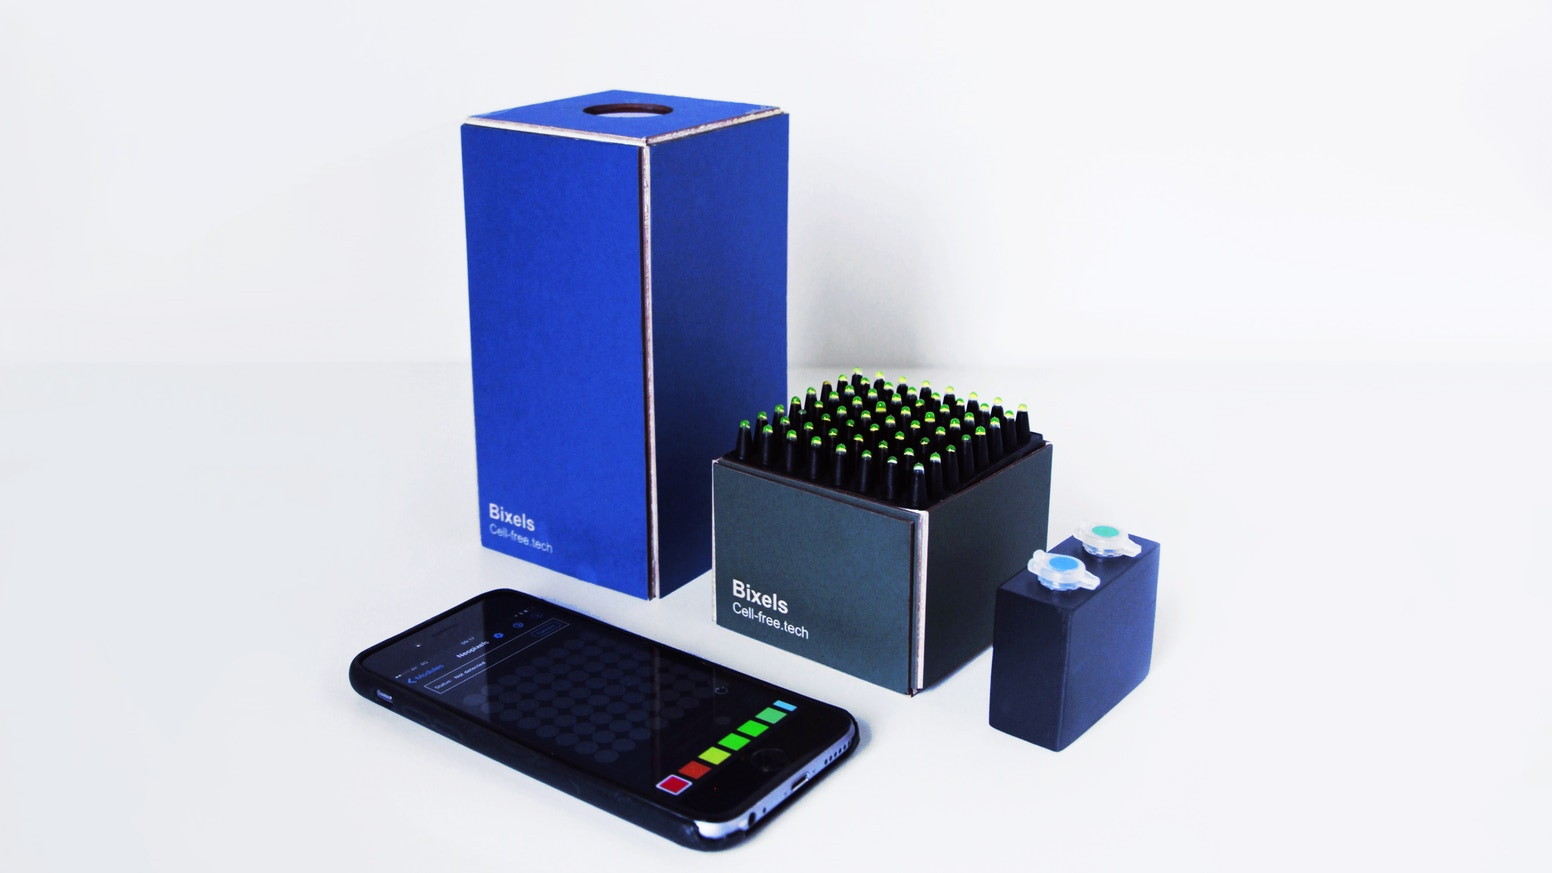 Bixels dna bio display by cell free technology kickstarter bixels dna bio display solutioingenieria Image collections